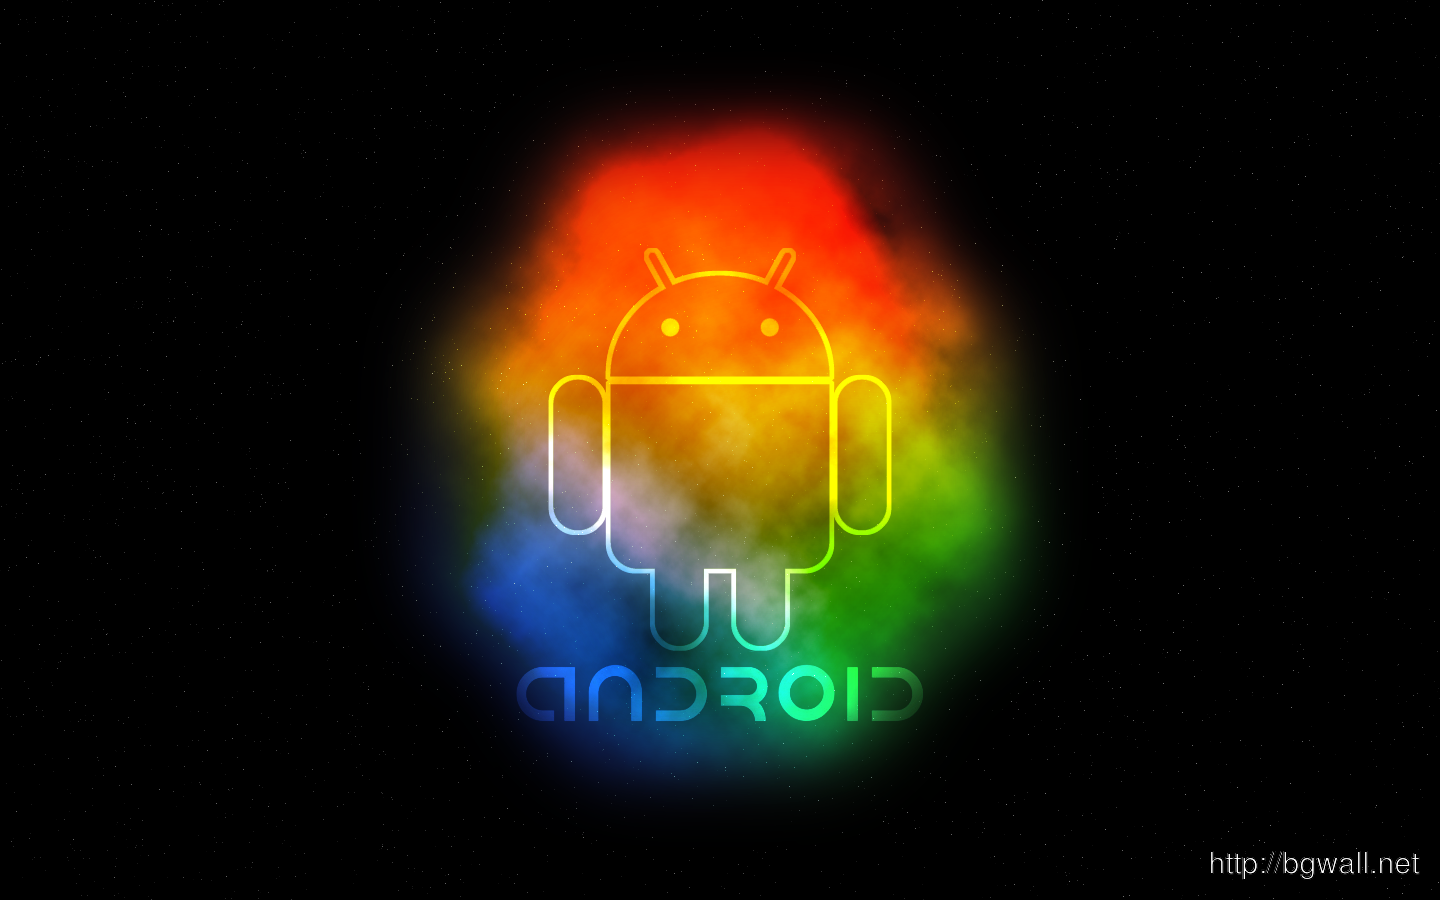 Android-HD-Background-Wallpaper